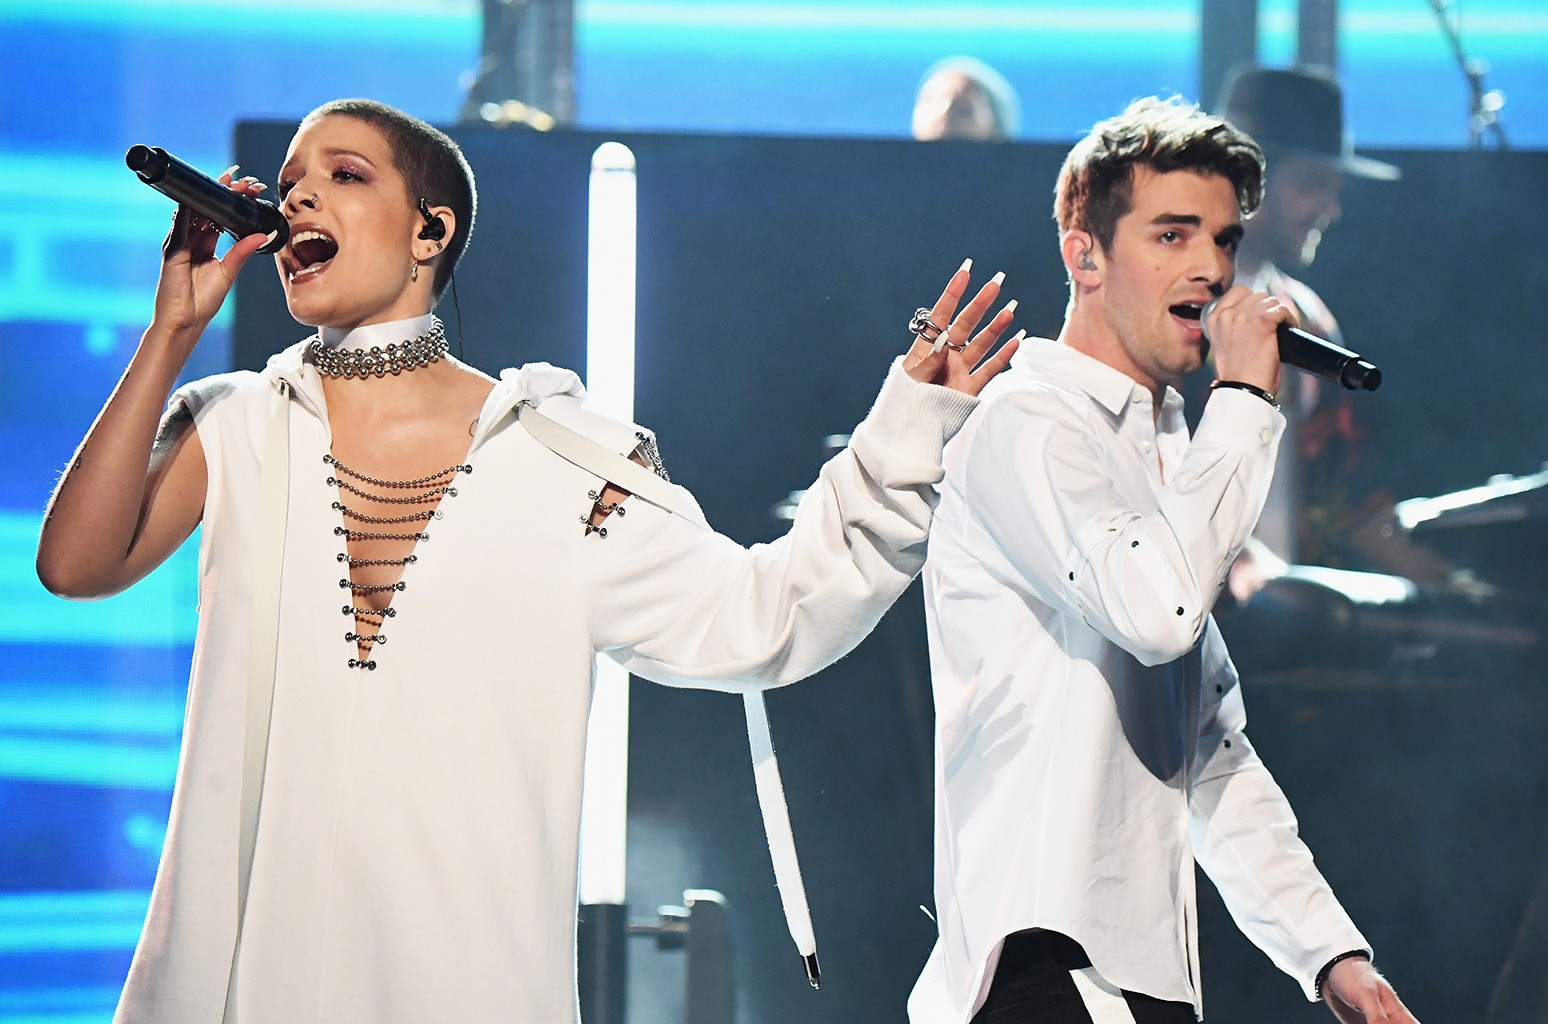 Halsey and the Chainsmokers